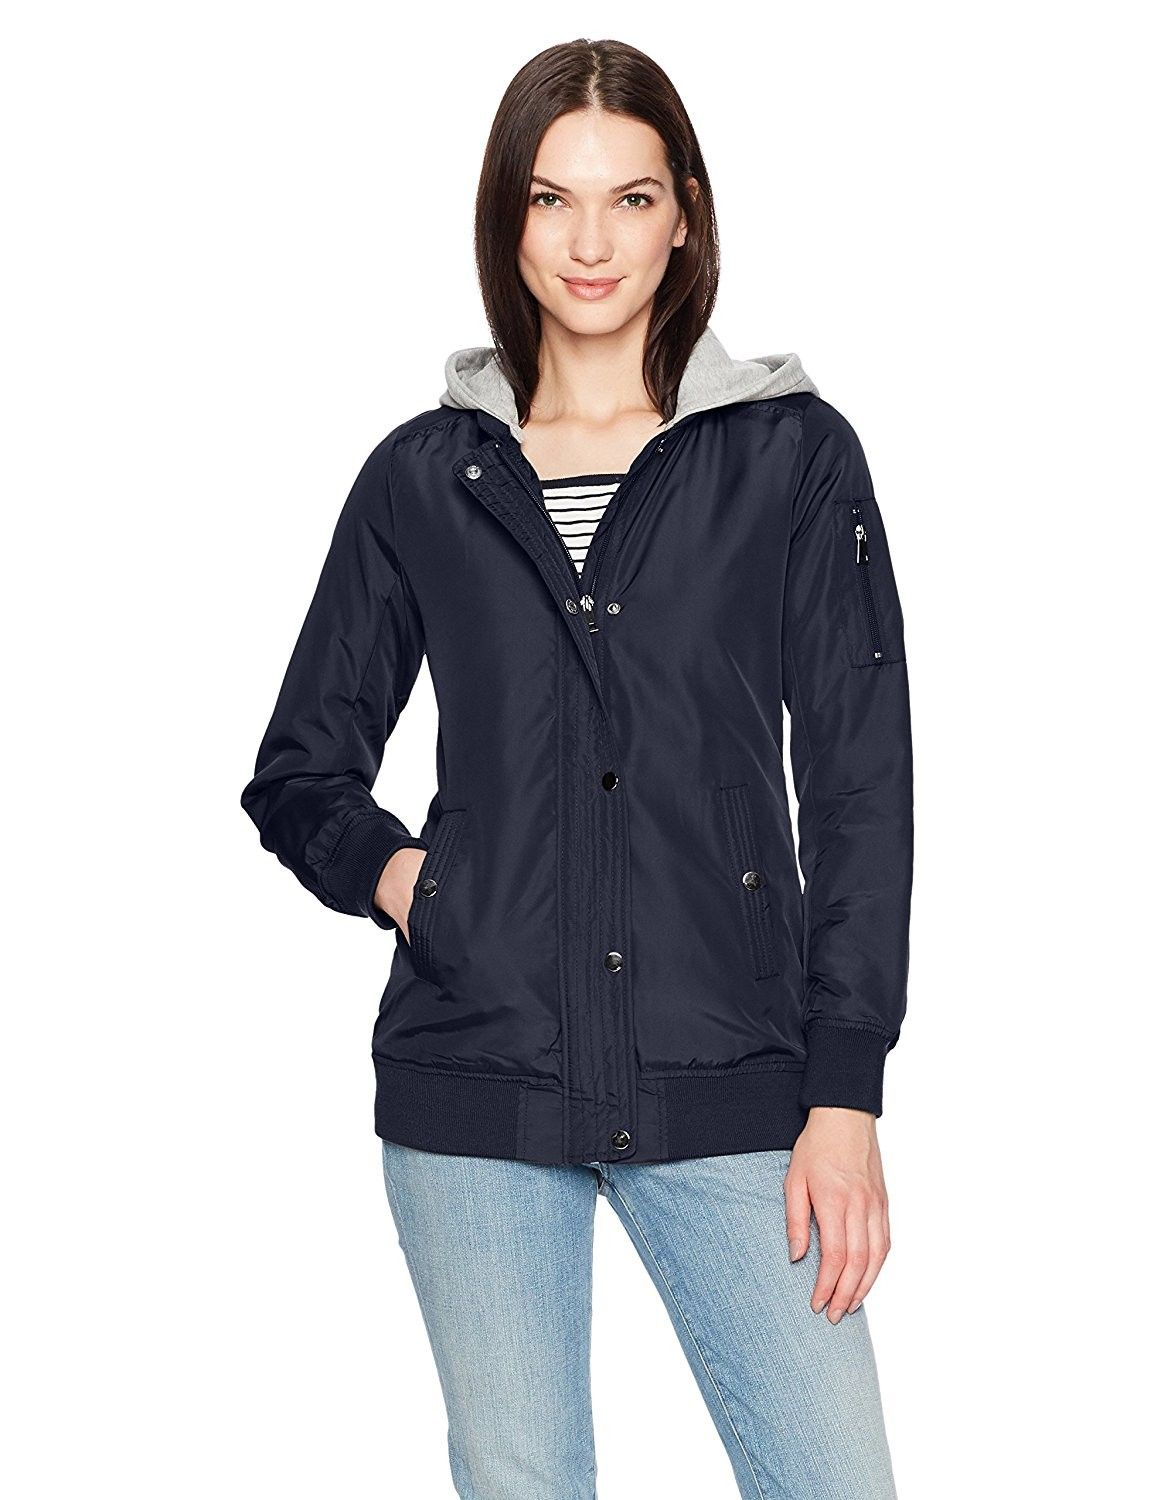 Women's Long Bomber Jacket With Fleece Hood Navy